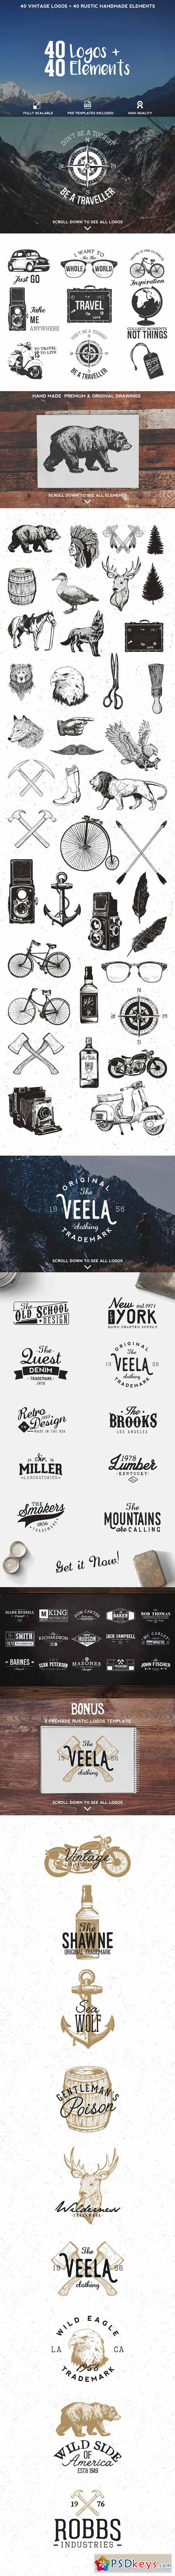 Logos & Elements Bundle 340067